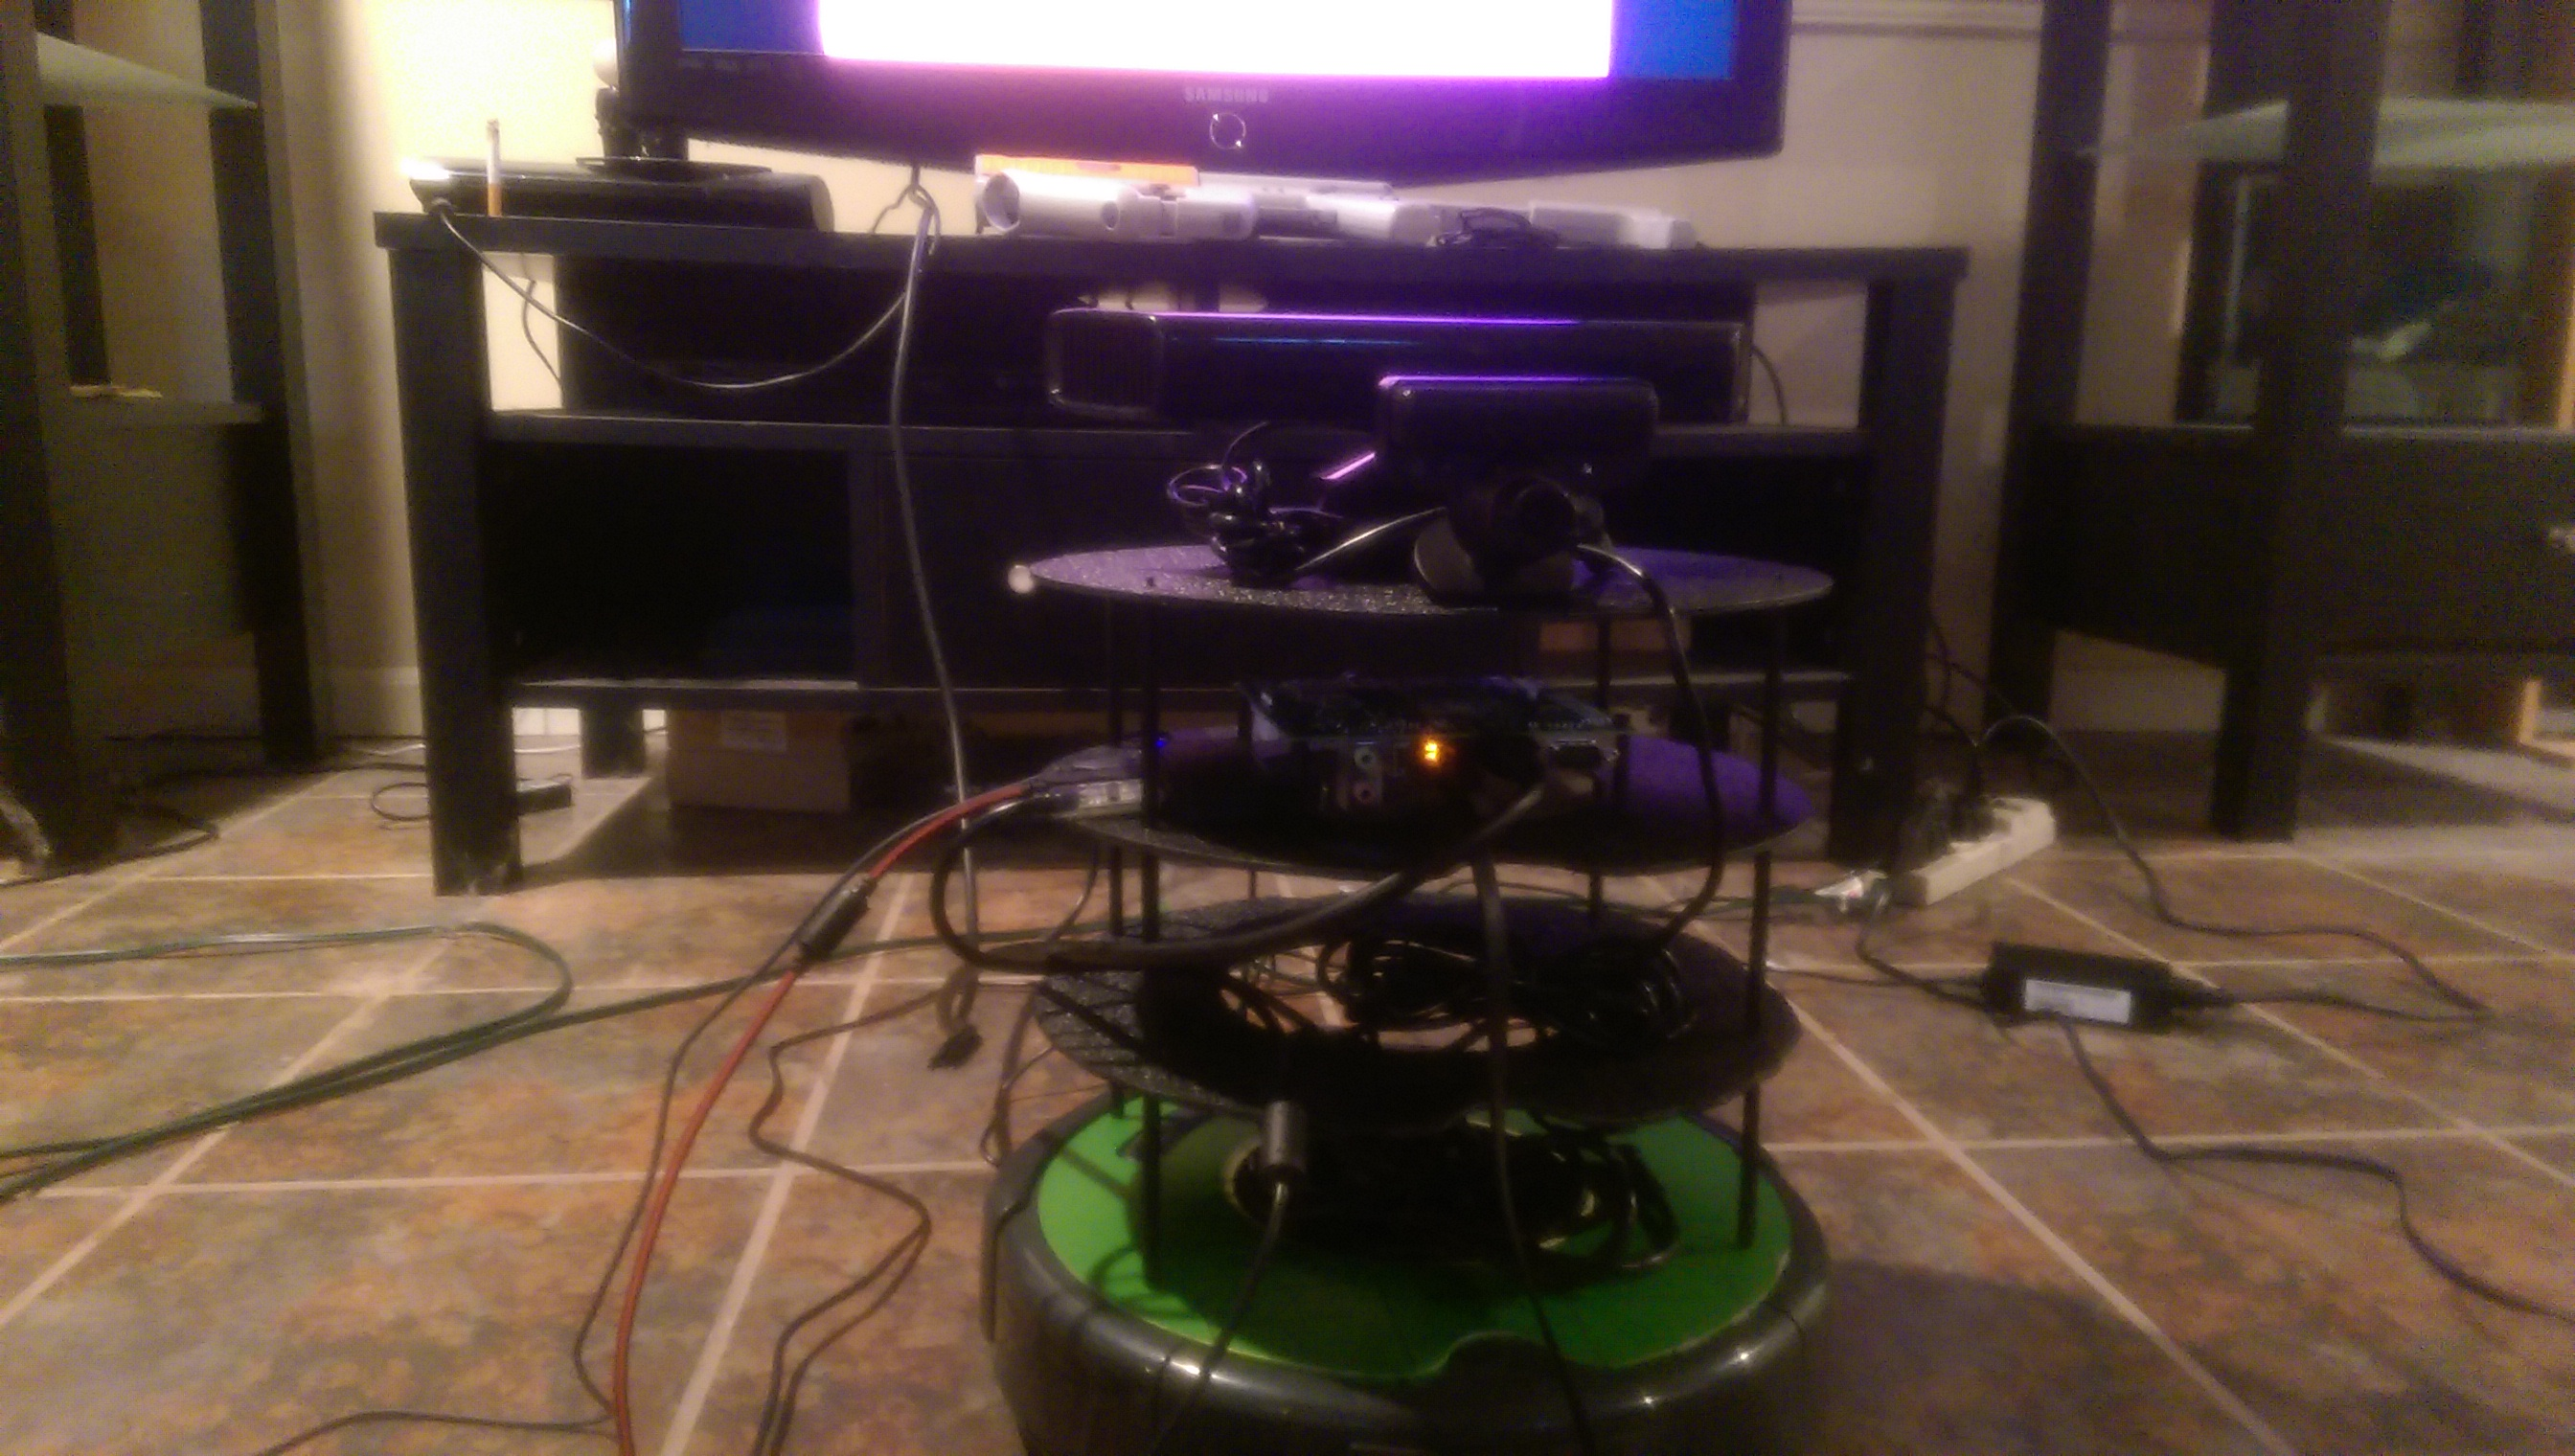 Jared Langbart's JetsonBot work in progress